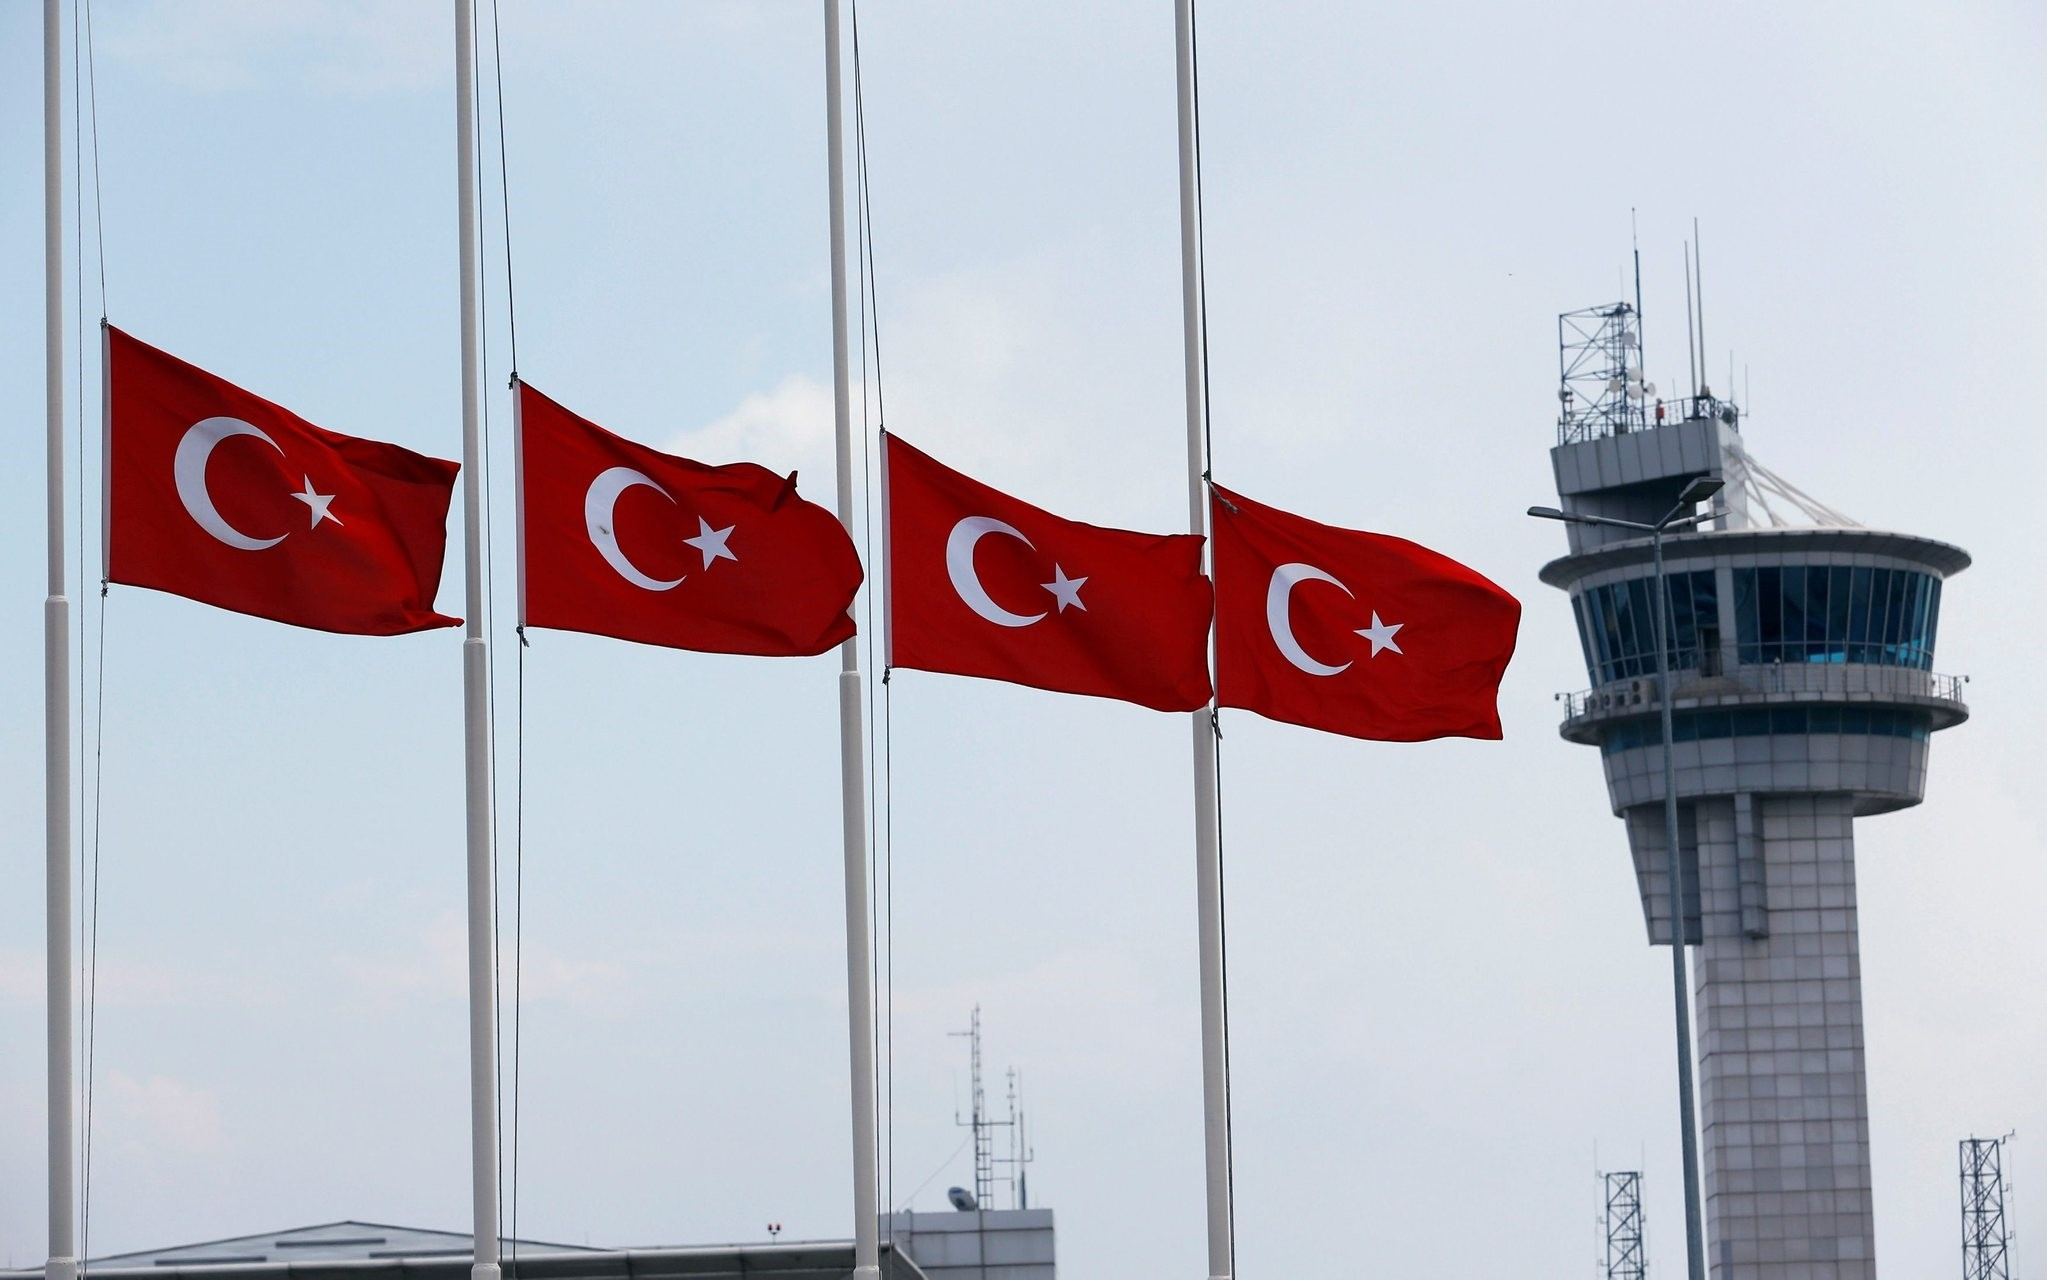 Turkish flags, with the control tower in the background, fly at half mast at the country's largest airport, Istanbul Atatu00fcrk, following the June attack there. (Reuters Photo)